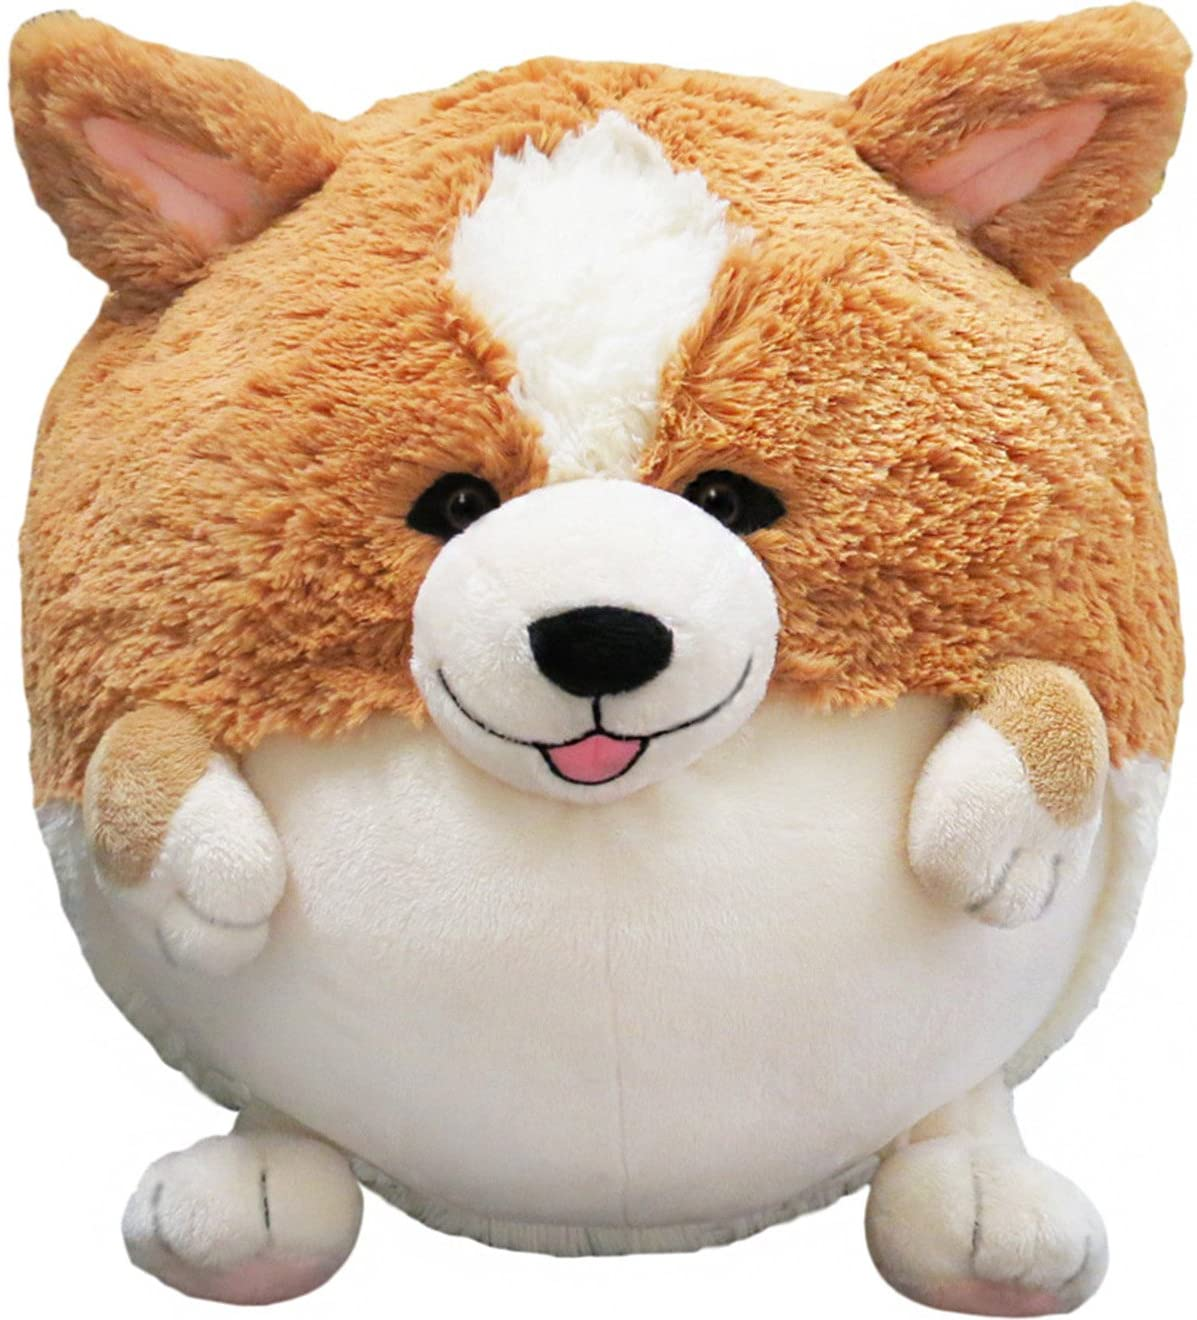 Squishable - Corgi